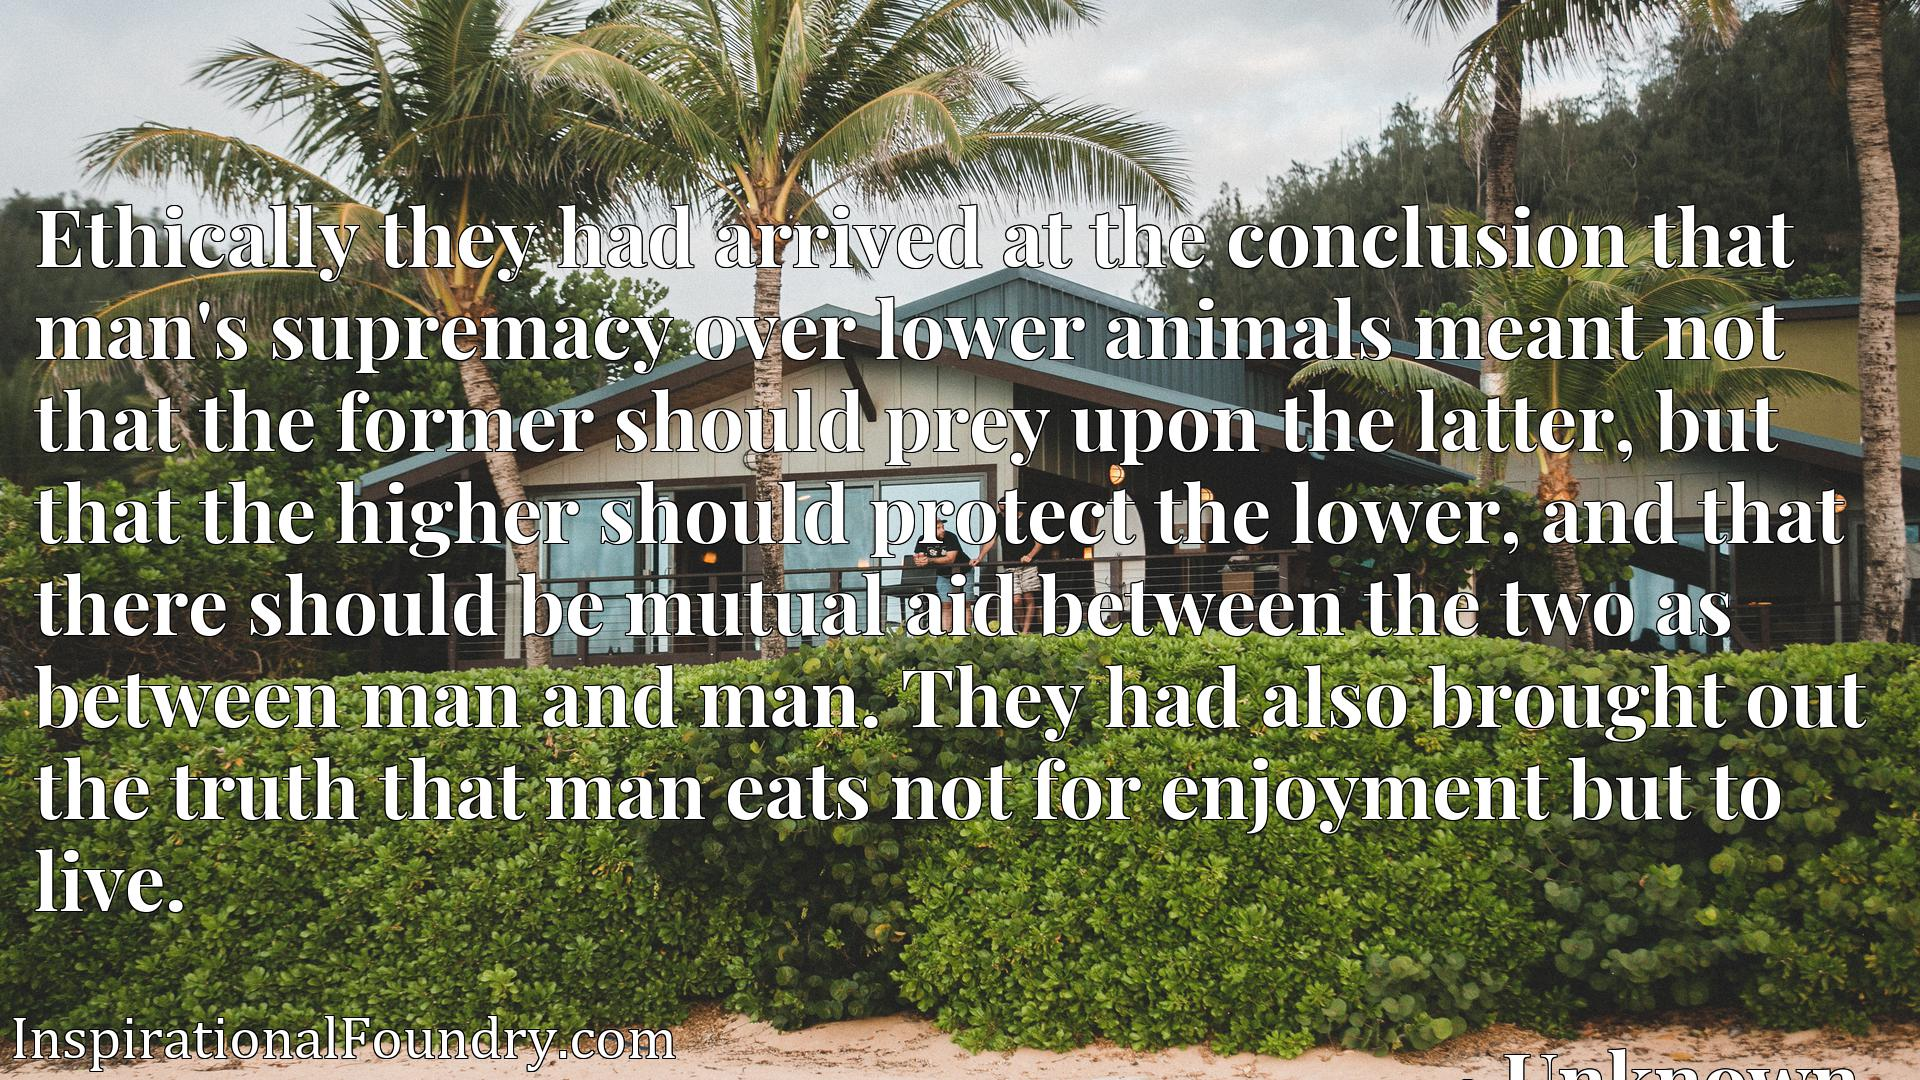 Ethically they had arrived at the conclusion that man's supremacy over lower animals meant not that the former should prey upon the latter, but that the higher should protect the lower, and that there should be mutual aid between the two as between man and man. They had also brought out the truth that man eats not for enjoyment but to live.